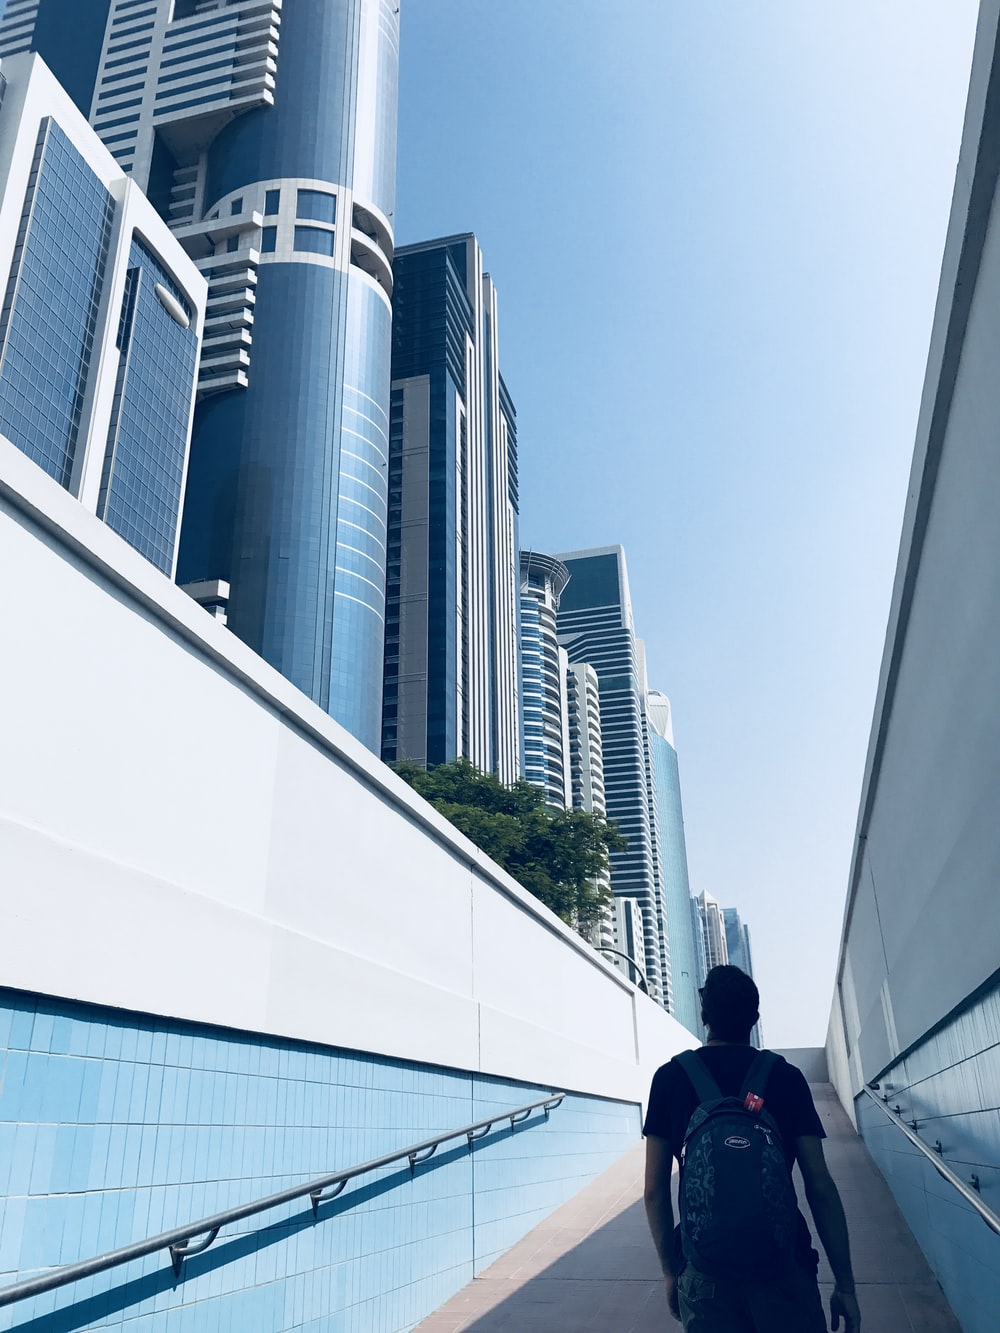 man standing on hallway near buildings during daytime